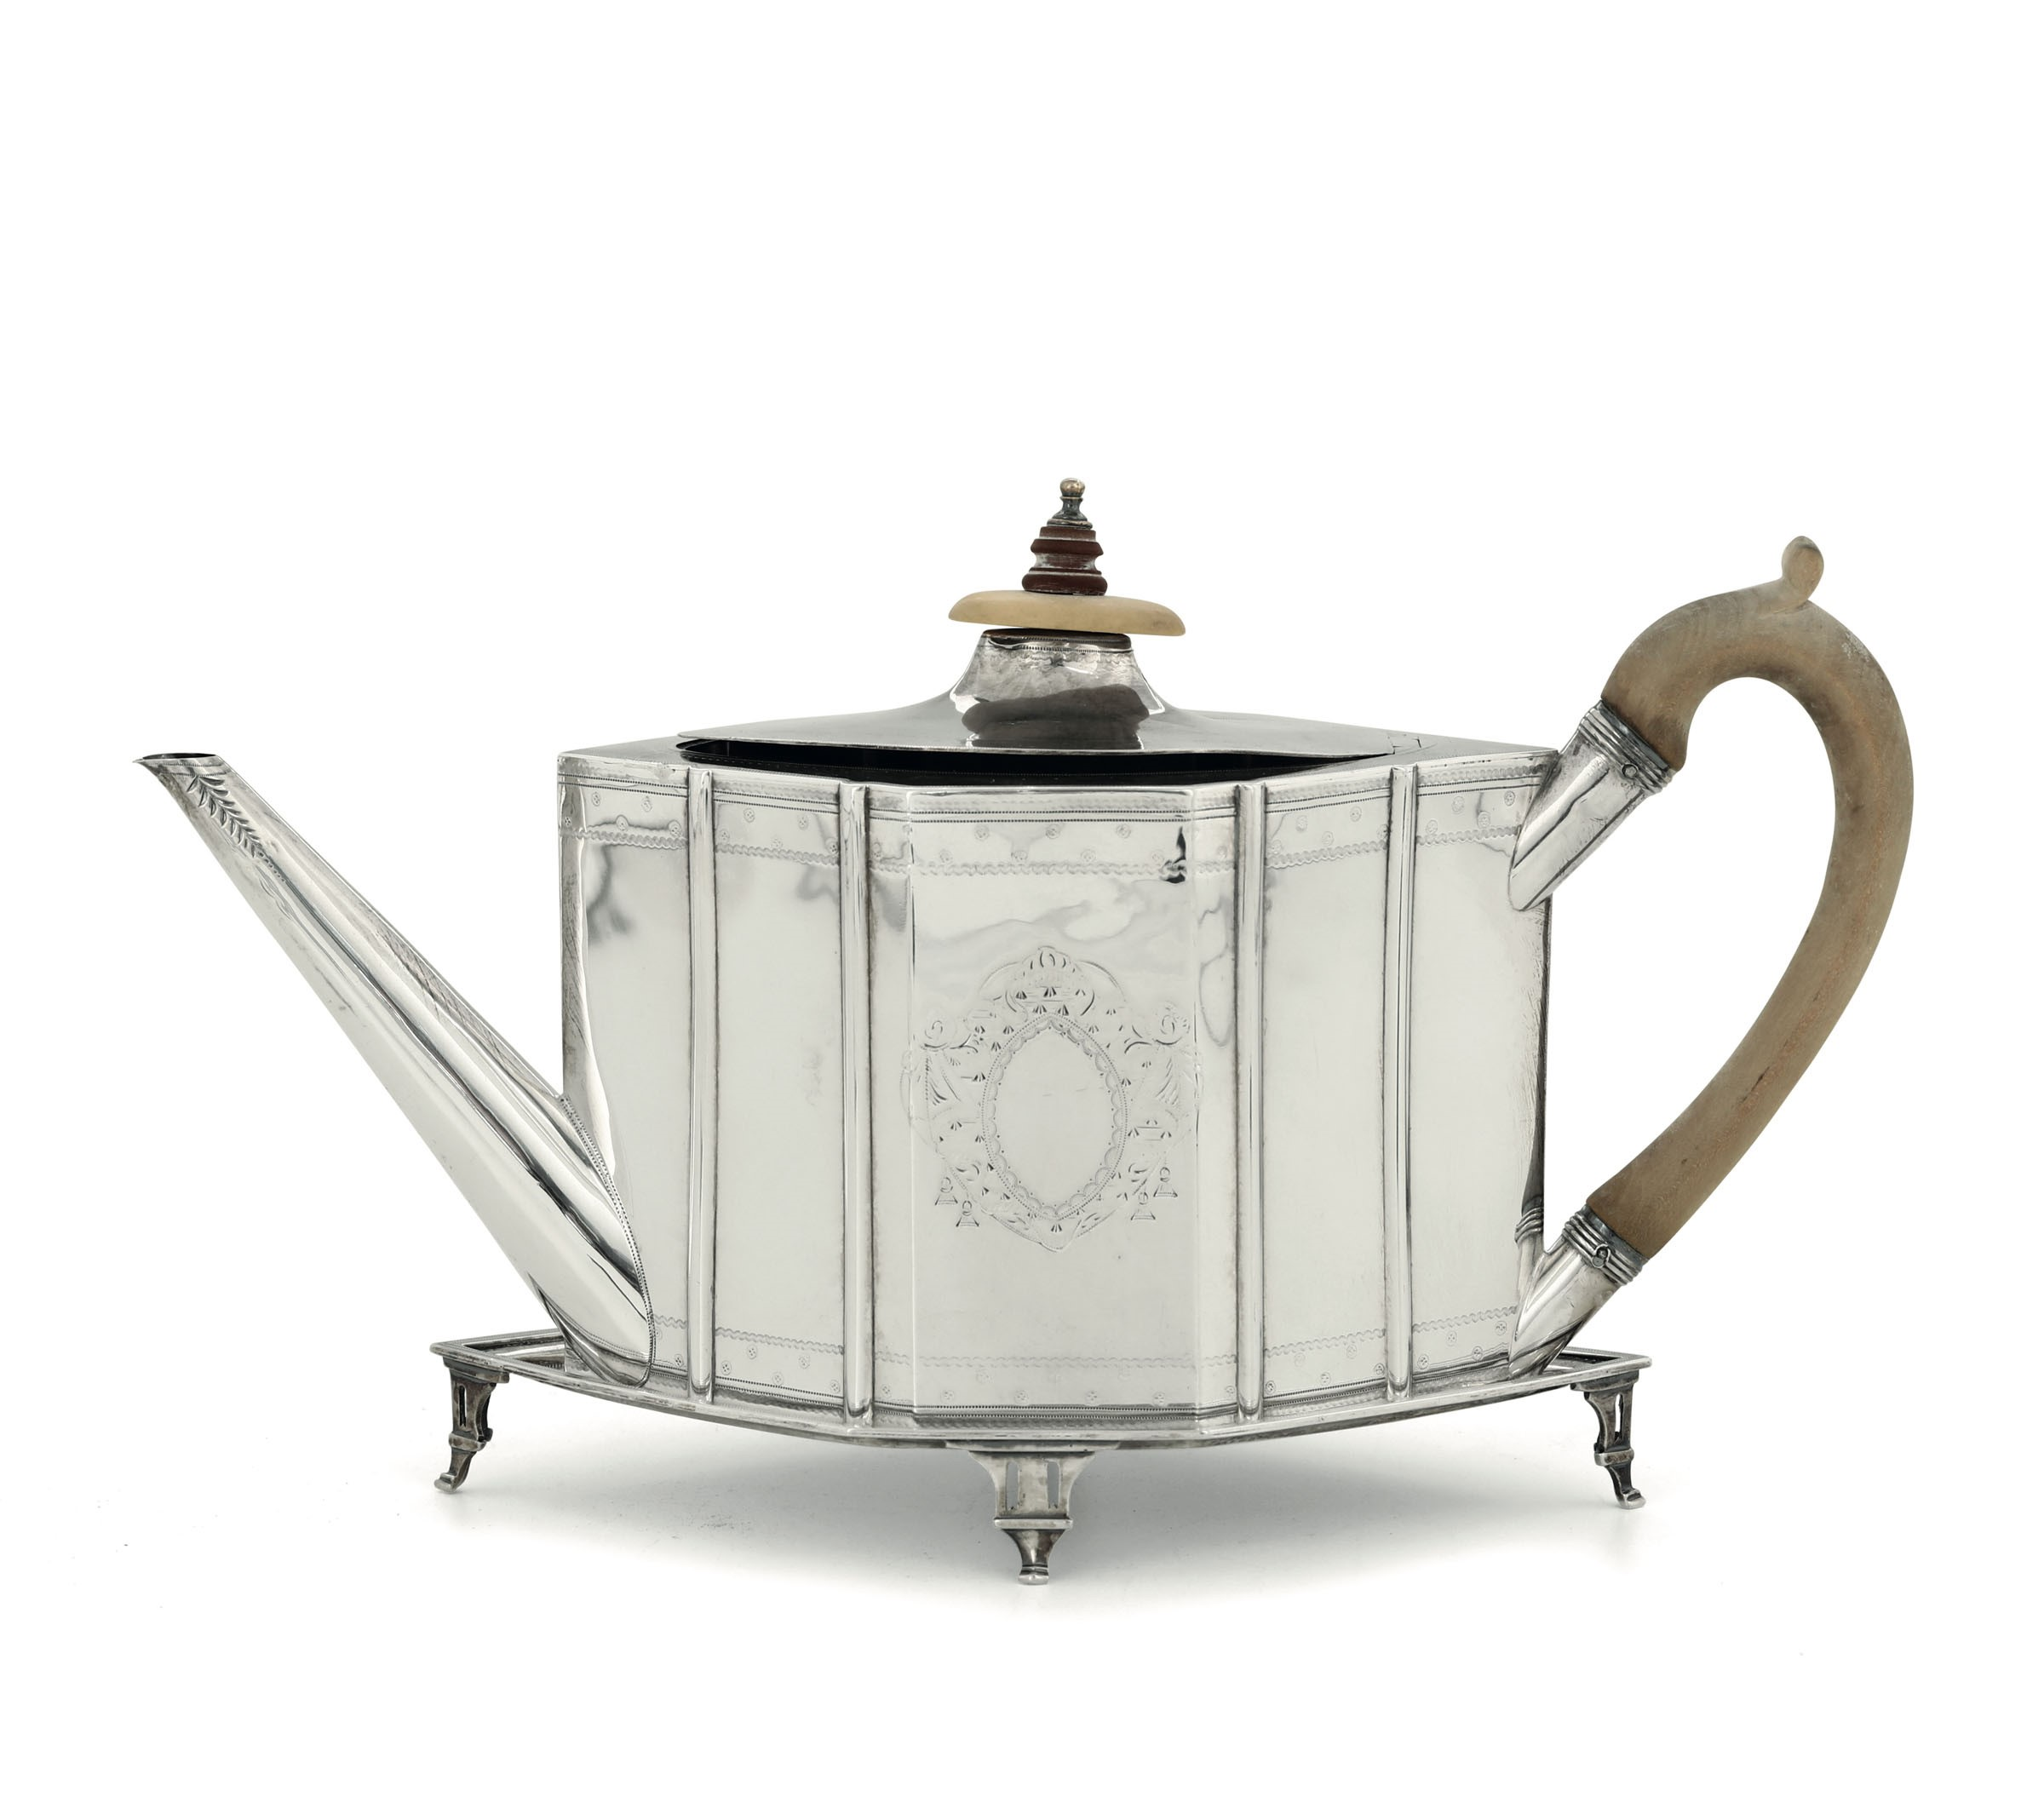 Lot 10 - A silver teapot, London, 1791 - Molten, embossed and chiselled sterling silver with a [...]